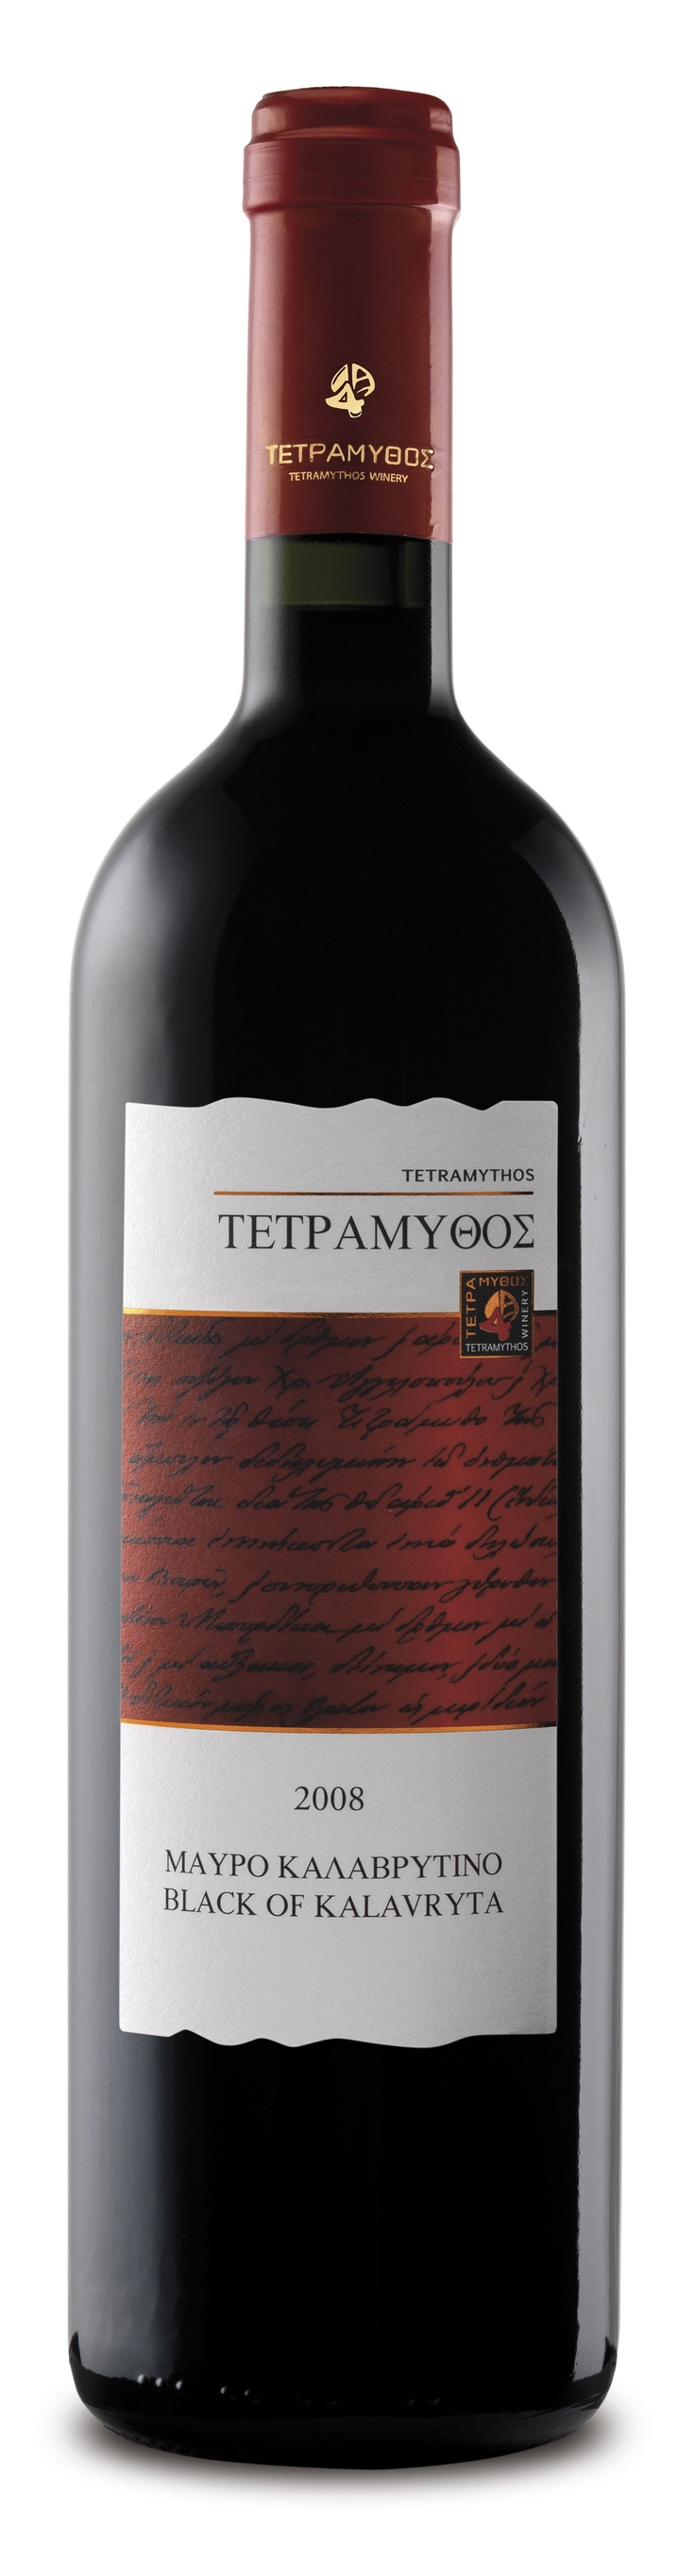 Tetramythos Wines  Black of Kalavryta (2011) Origin - Type: Protected Geographical Indication Achaia - Dry Red Wine  Grape Variety: 100% Black of Kalavryta. The wine is certified organic - Our price, DKK 125 (incl. moms)